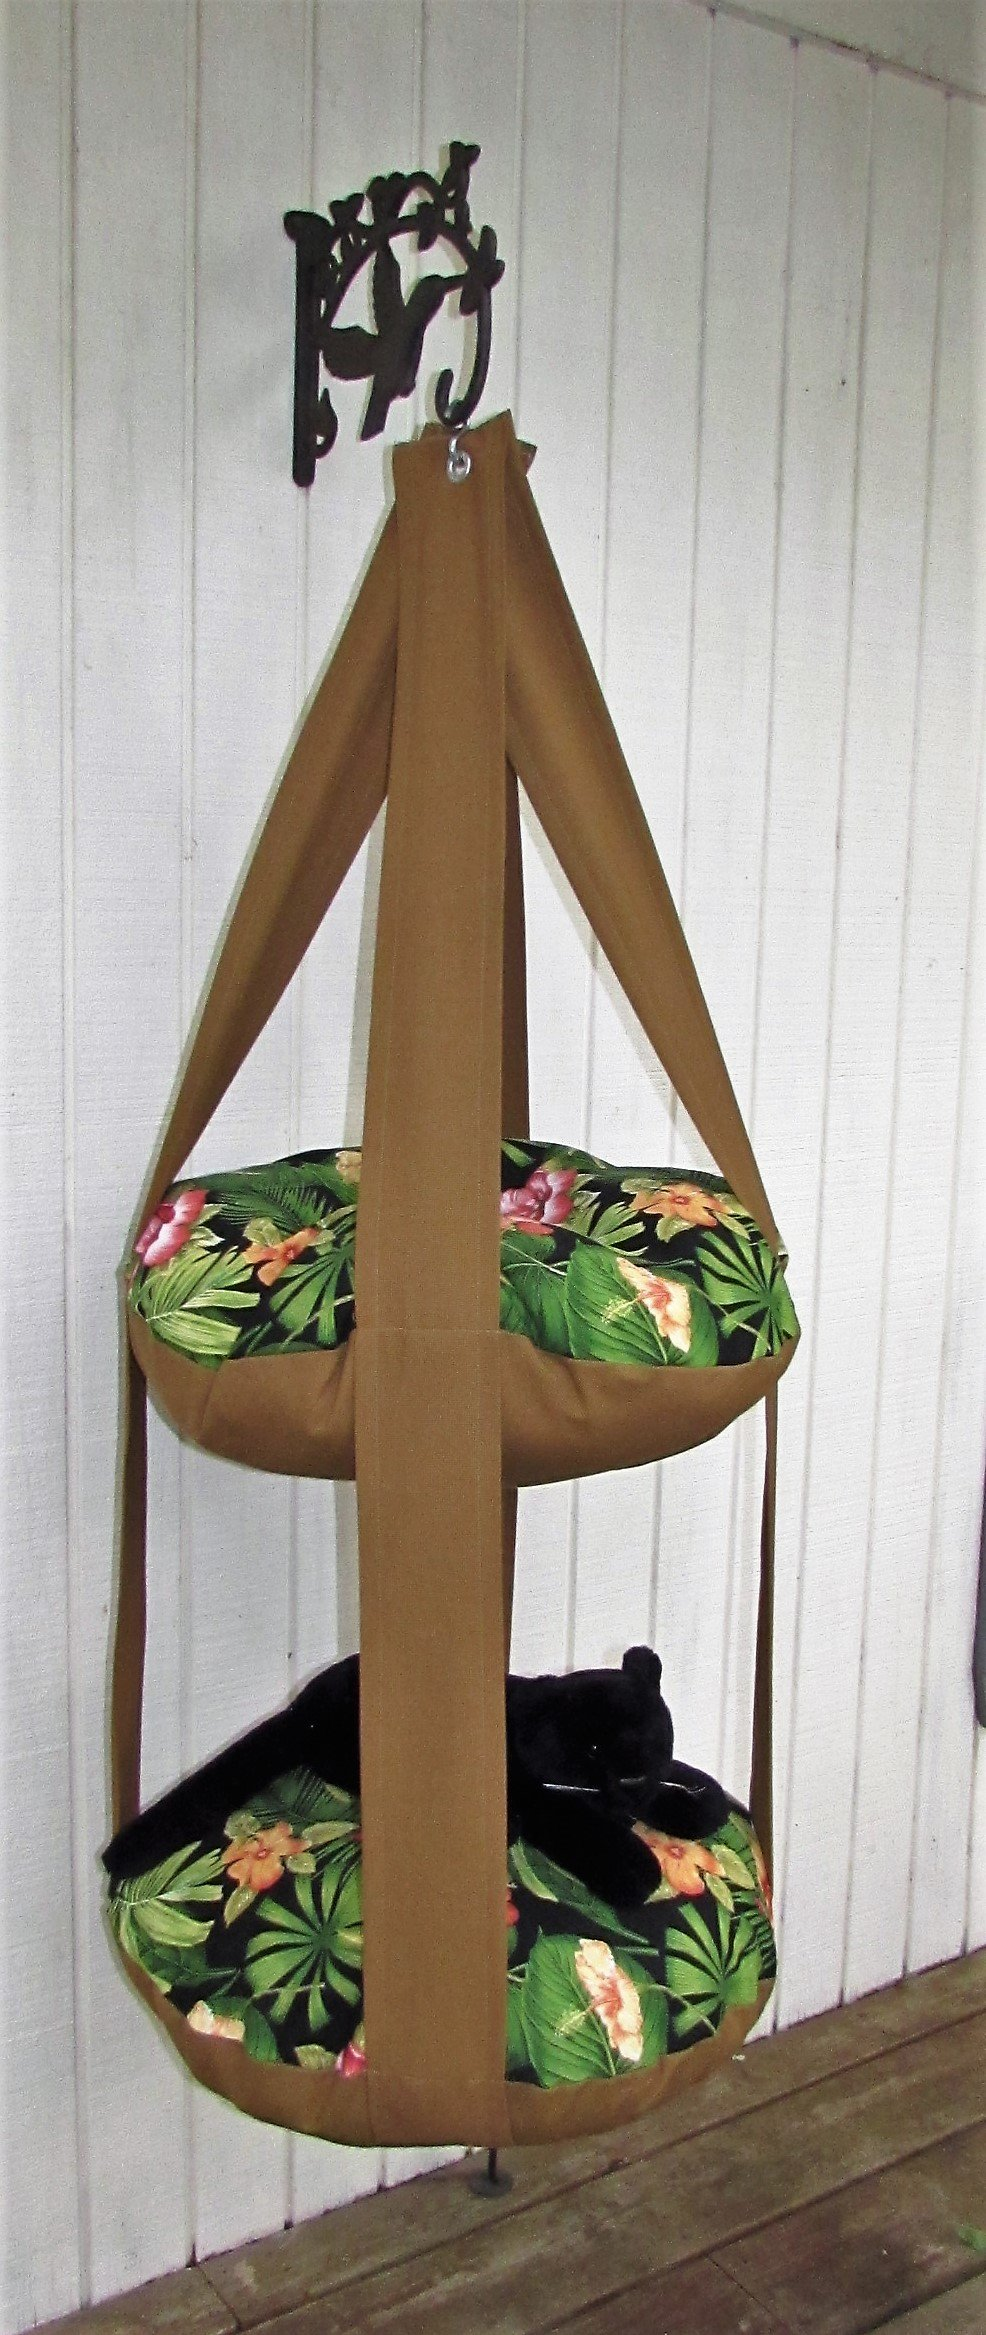 Outdoor Cat Tree Hibiscus Tropical Palm 2 Level Kitty Cloud Cat Bed, Hanging Cat Bed, Pet Furniture, Cat Tree, Catio Furniture